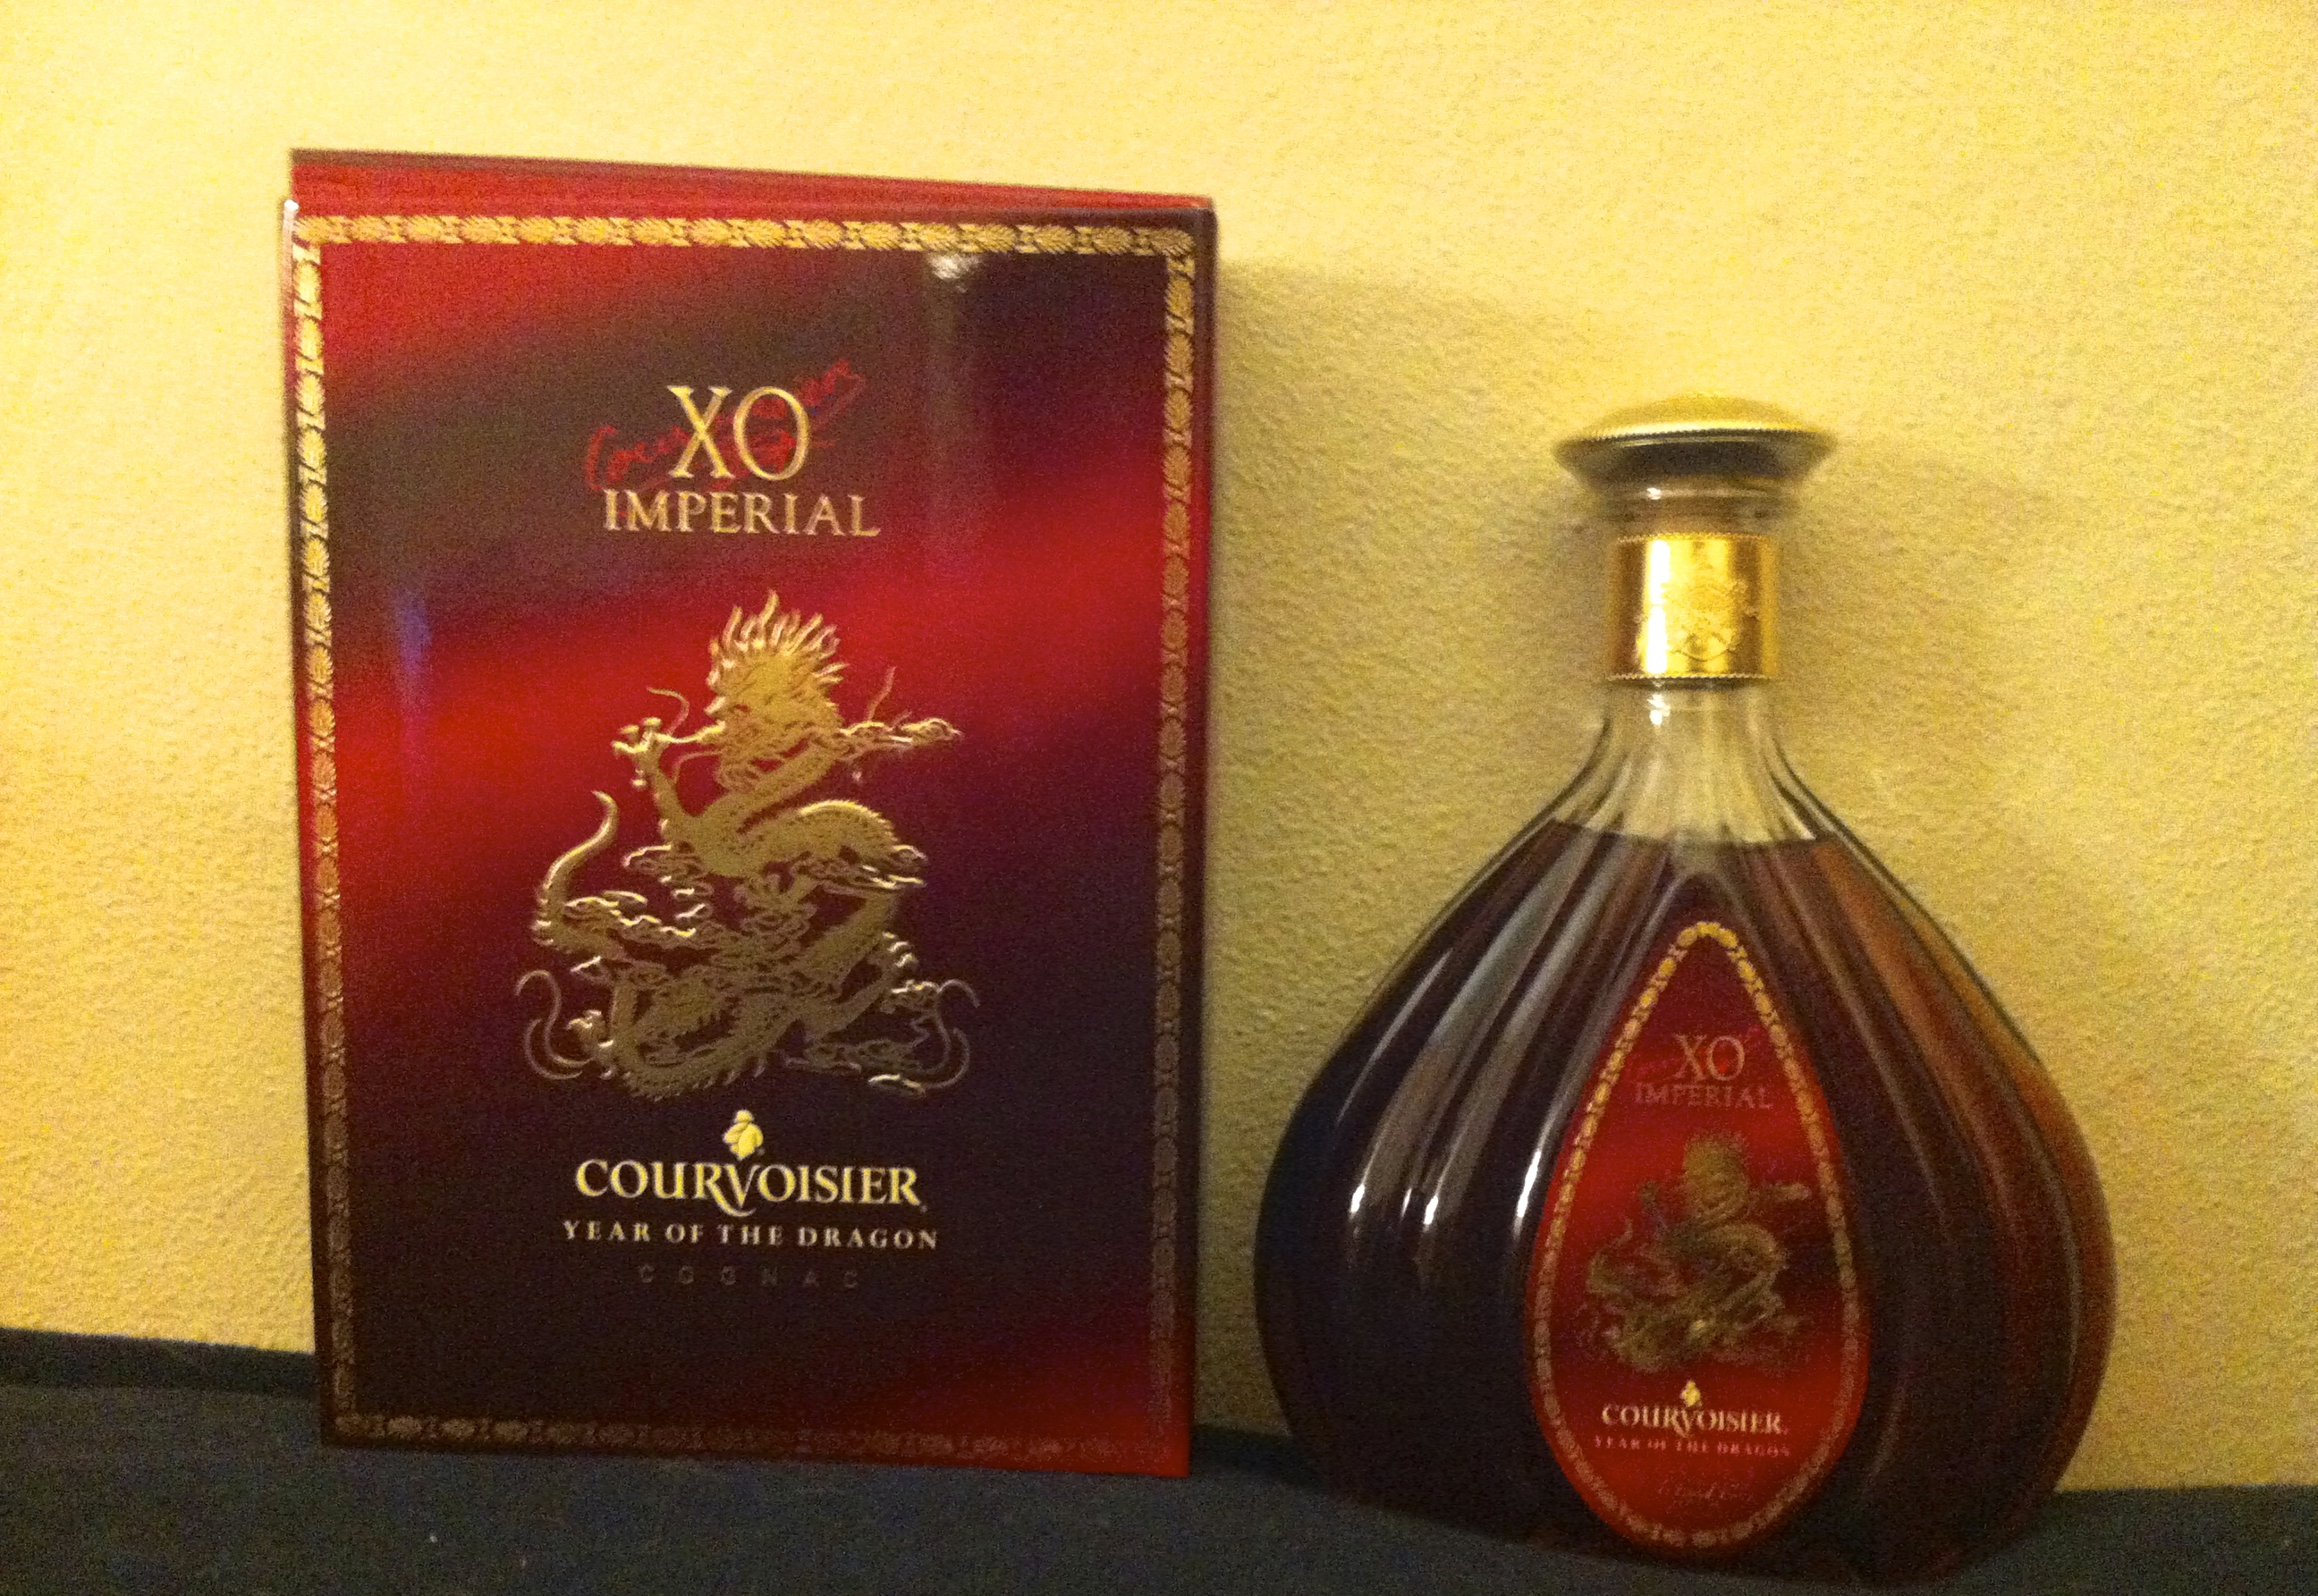 Courvoisier XO Imperial Year of the Dragon Cognac